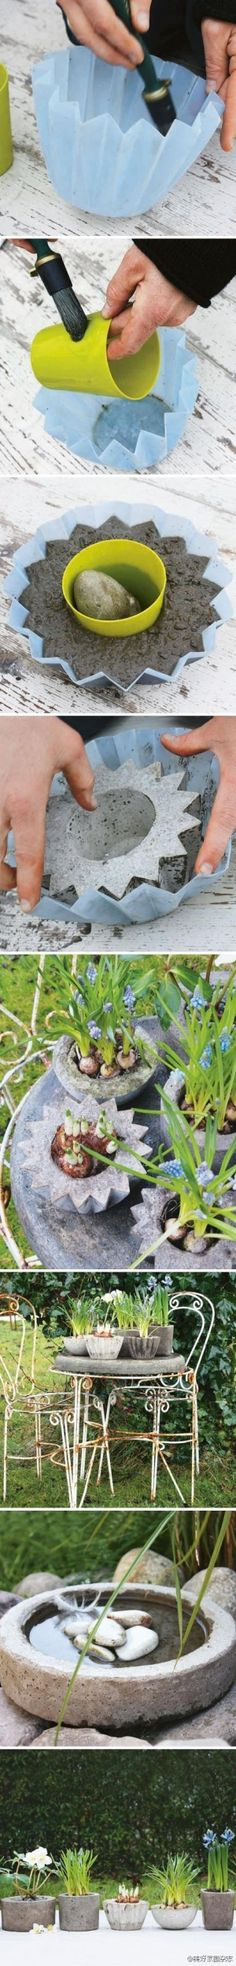 make your own planters #diy #cement by rachelmq